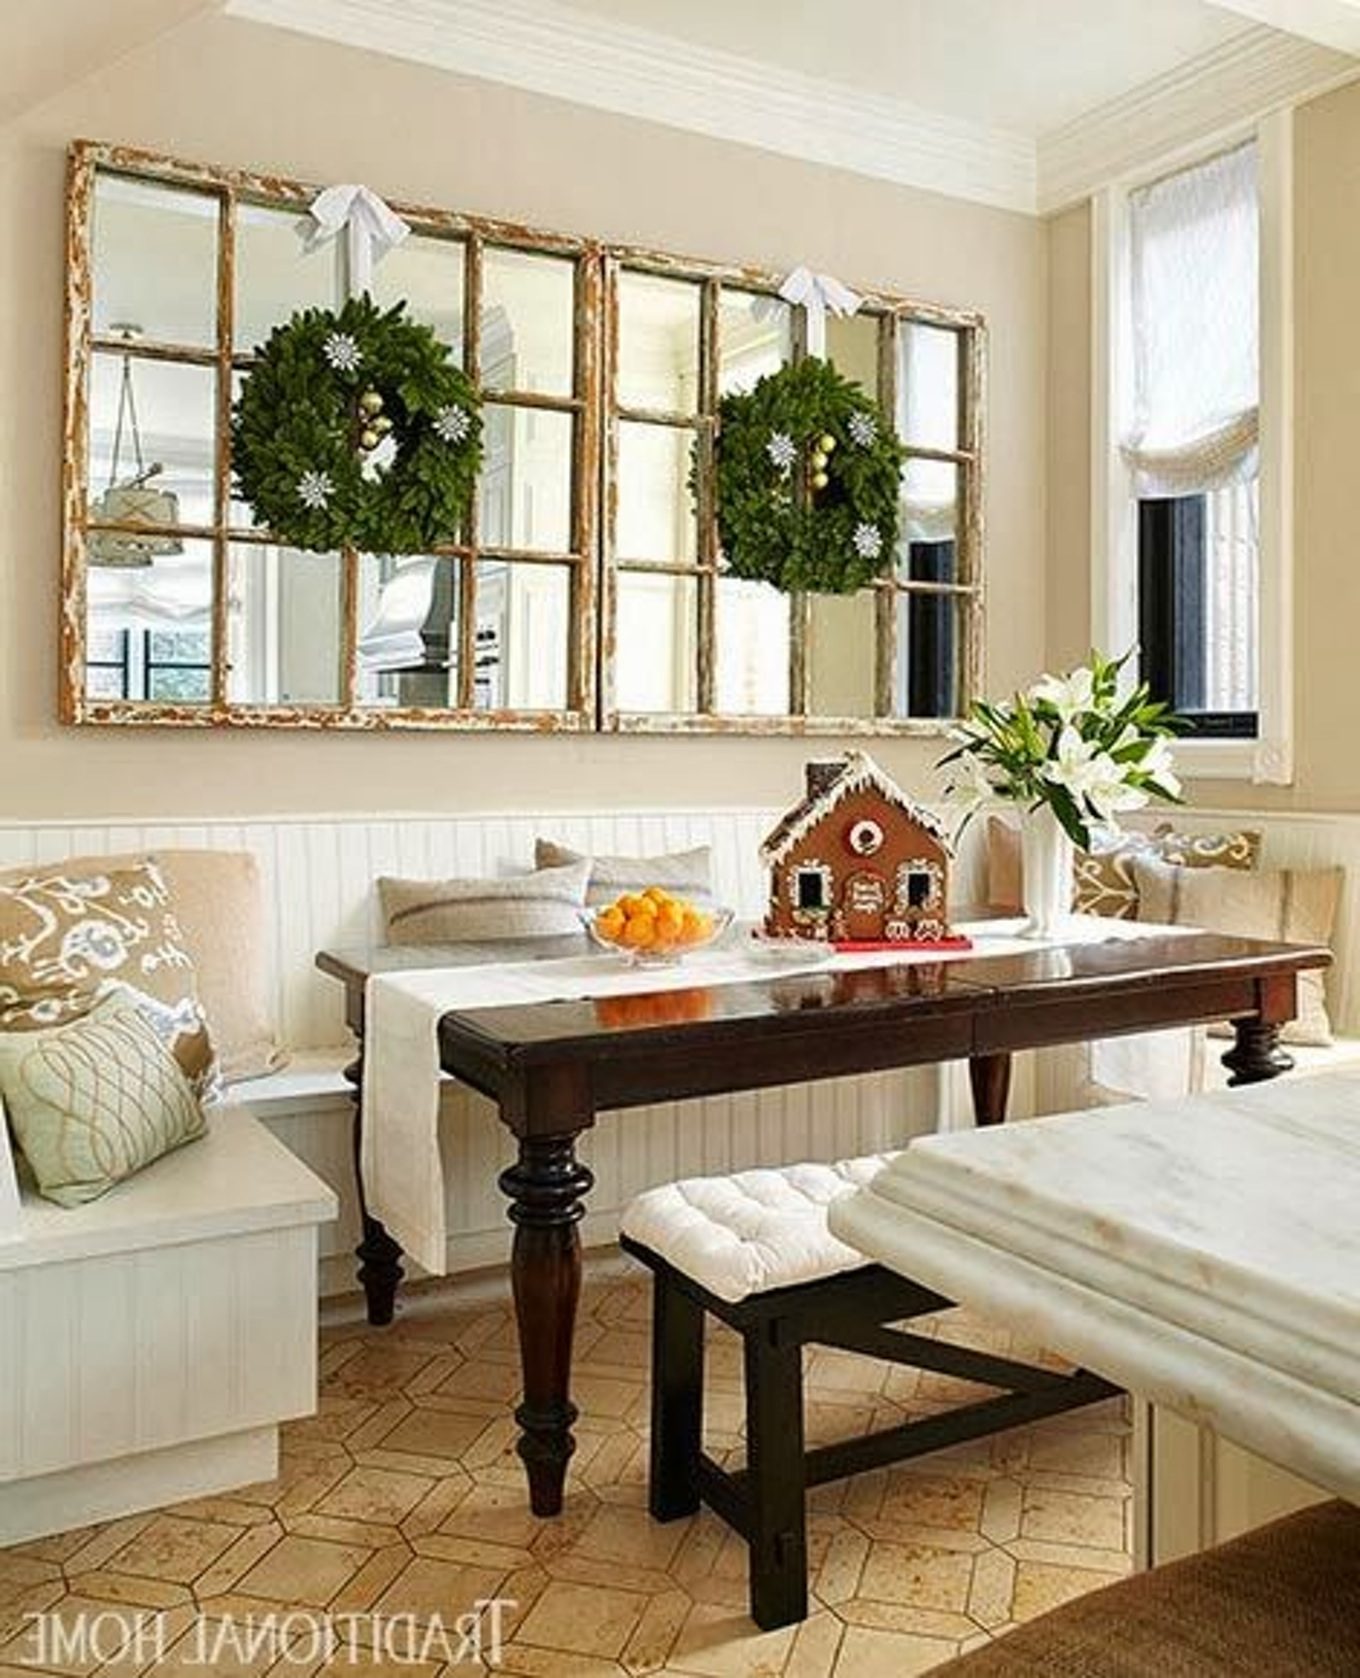 10 Kitchen Christmas Decoration Ideas | ly Spaces on remodeling ideas for kitchen, christmas decorations above kitchen cabinets, christmas decor for kitchen, design ideas for kitchen, organizing ideas for kitchen, christmas centerpieces for kitchen, christmas kitchen decor idea, color ideas for kitchen, home ideas for kitchen, christmas crafts for kitchen, christmas lights for kitchen, diy for kitchen, storage ideas for kitchen, paint ideas for kitchen, italy ideas for kitchen, lighting ideas for kitchen, sewing ideas for kitchen, painting ideas for kitchen, vintage ideas for kitchen, christmas rugs for kitchen,